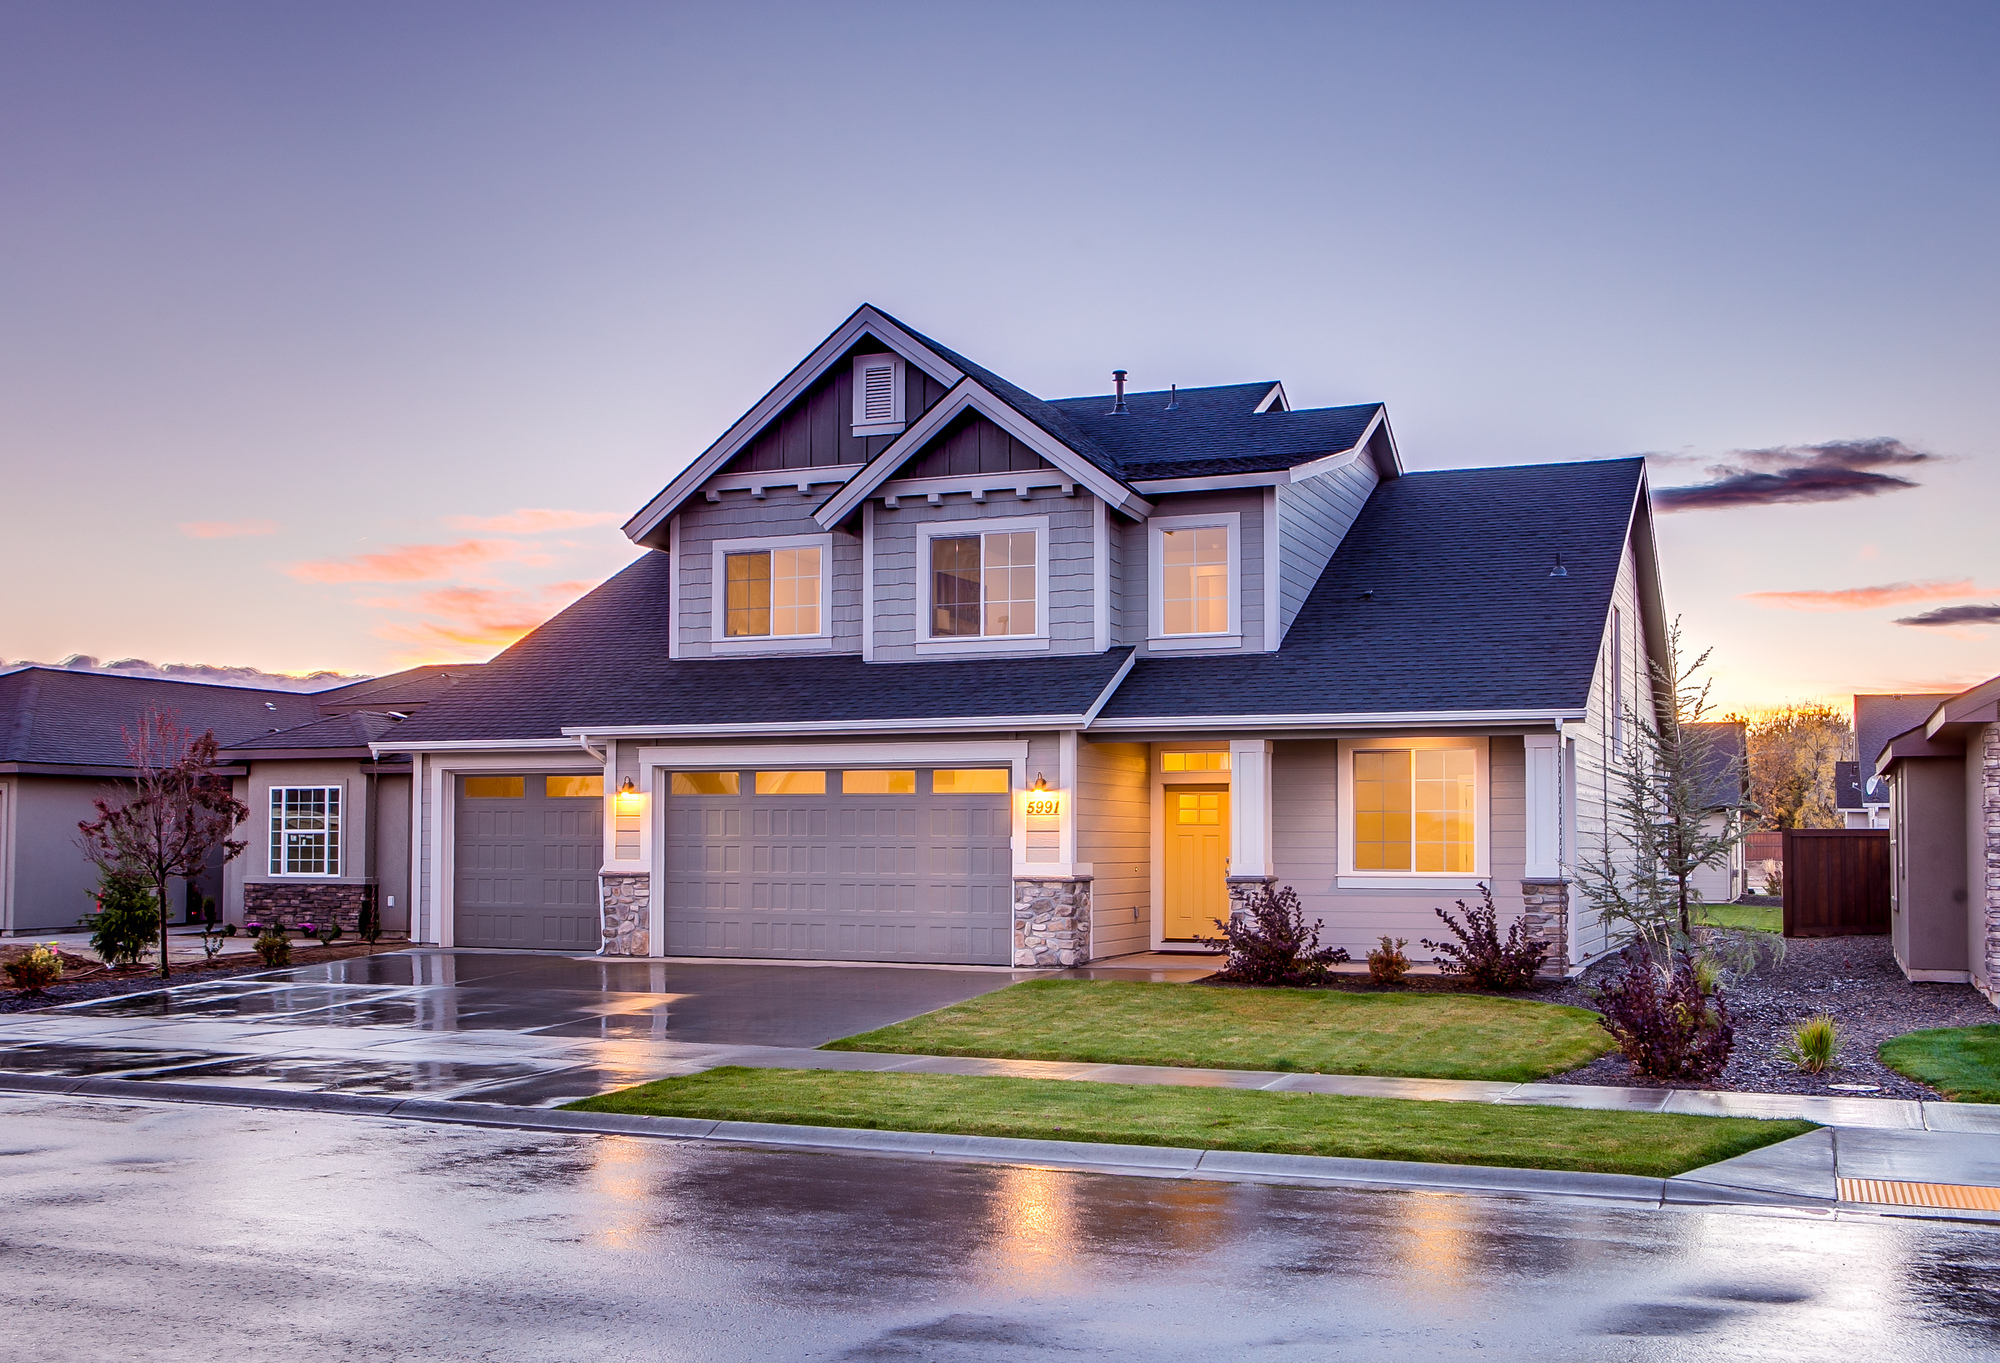 The Price Is Right: Will House Prices Go Down in 2021?